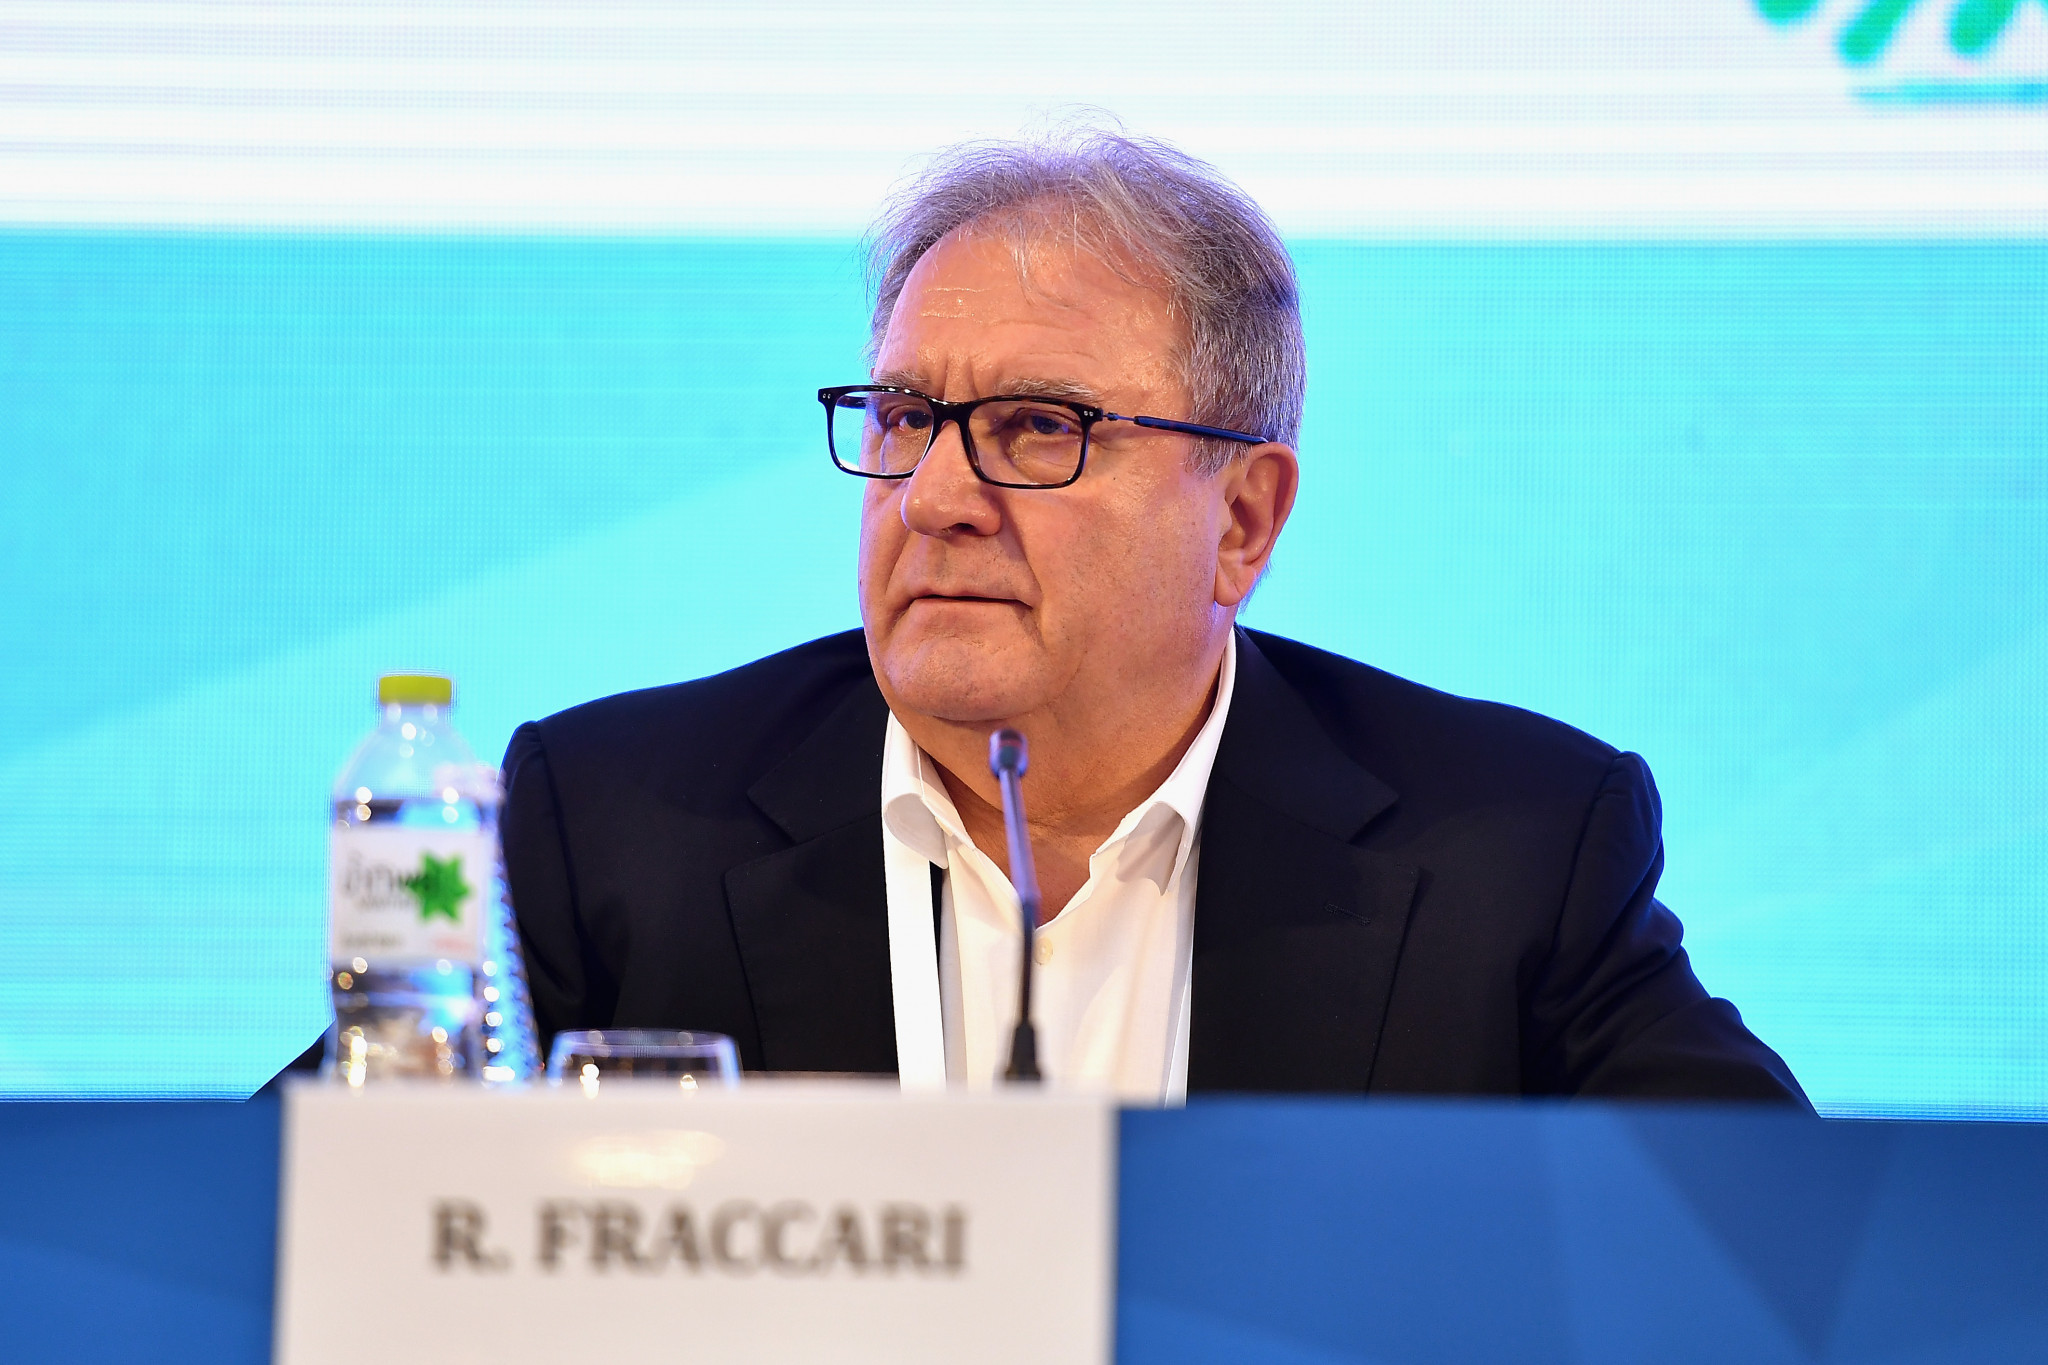 WBSC President Riccardo Fraccari has continually raised concerns on the sport's format at Tokyo 2020 ©Getty Images